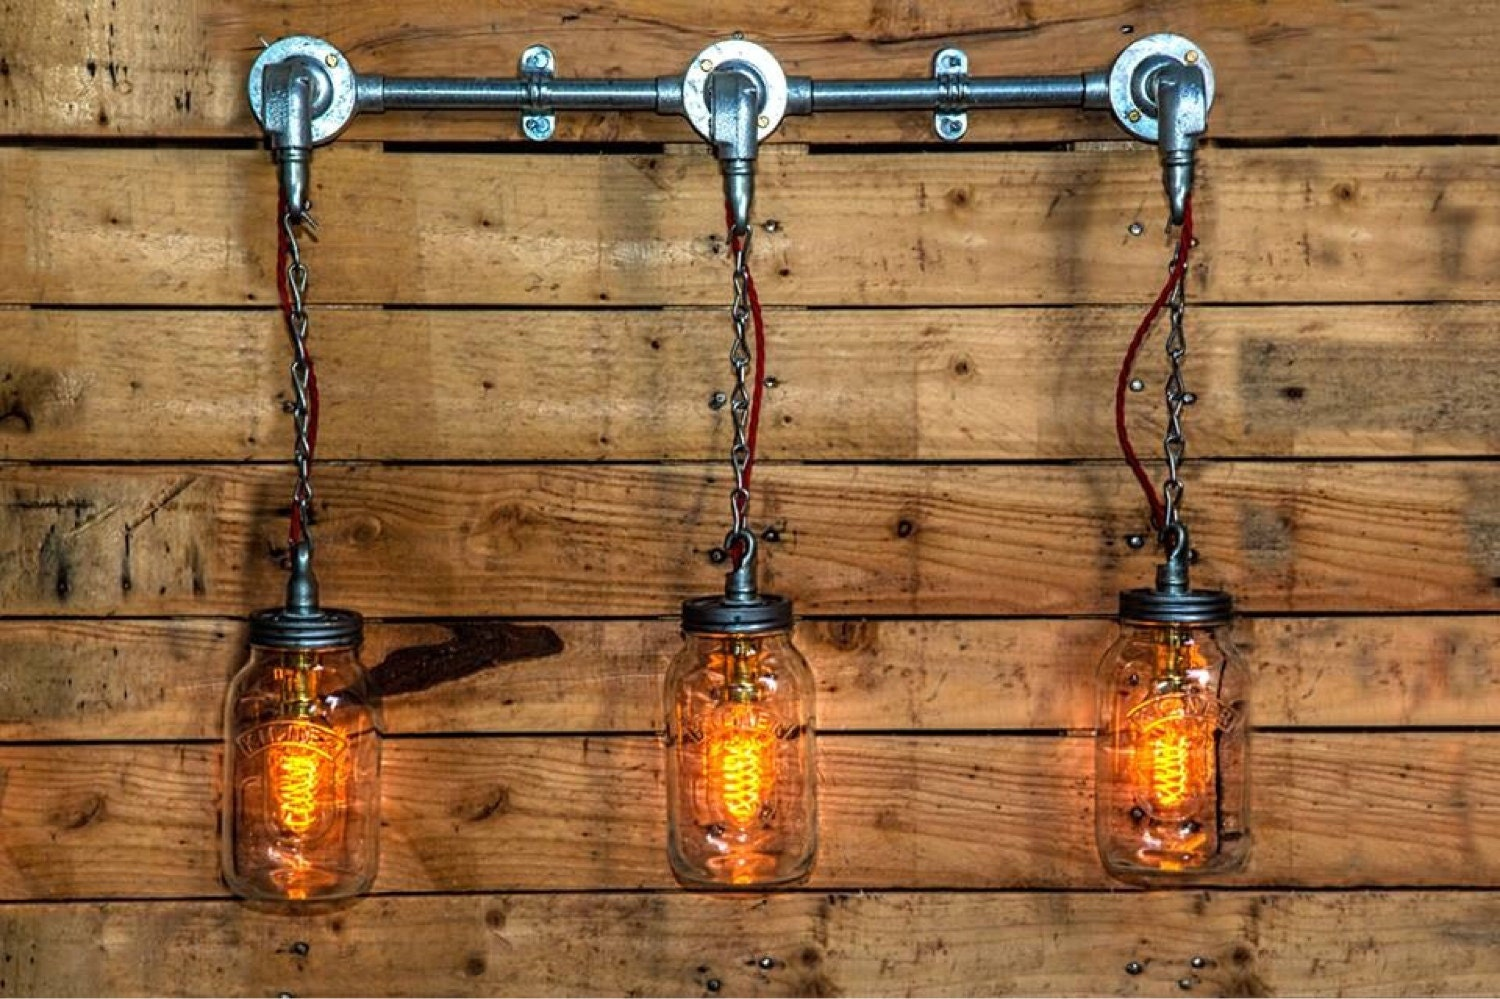 Steel Conduit And Hanging Mason Jars Wall Or Ceiling Light